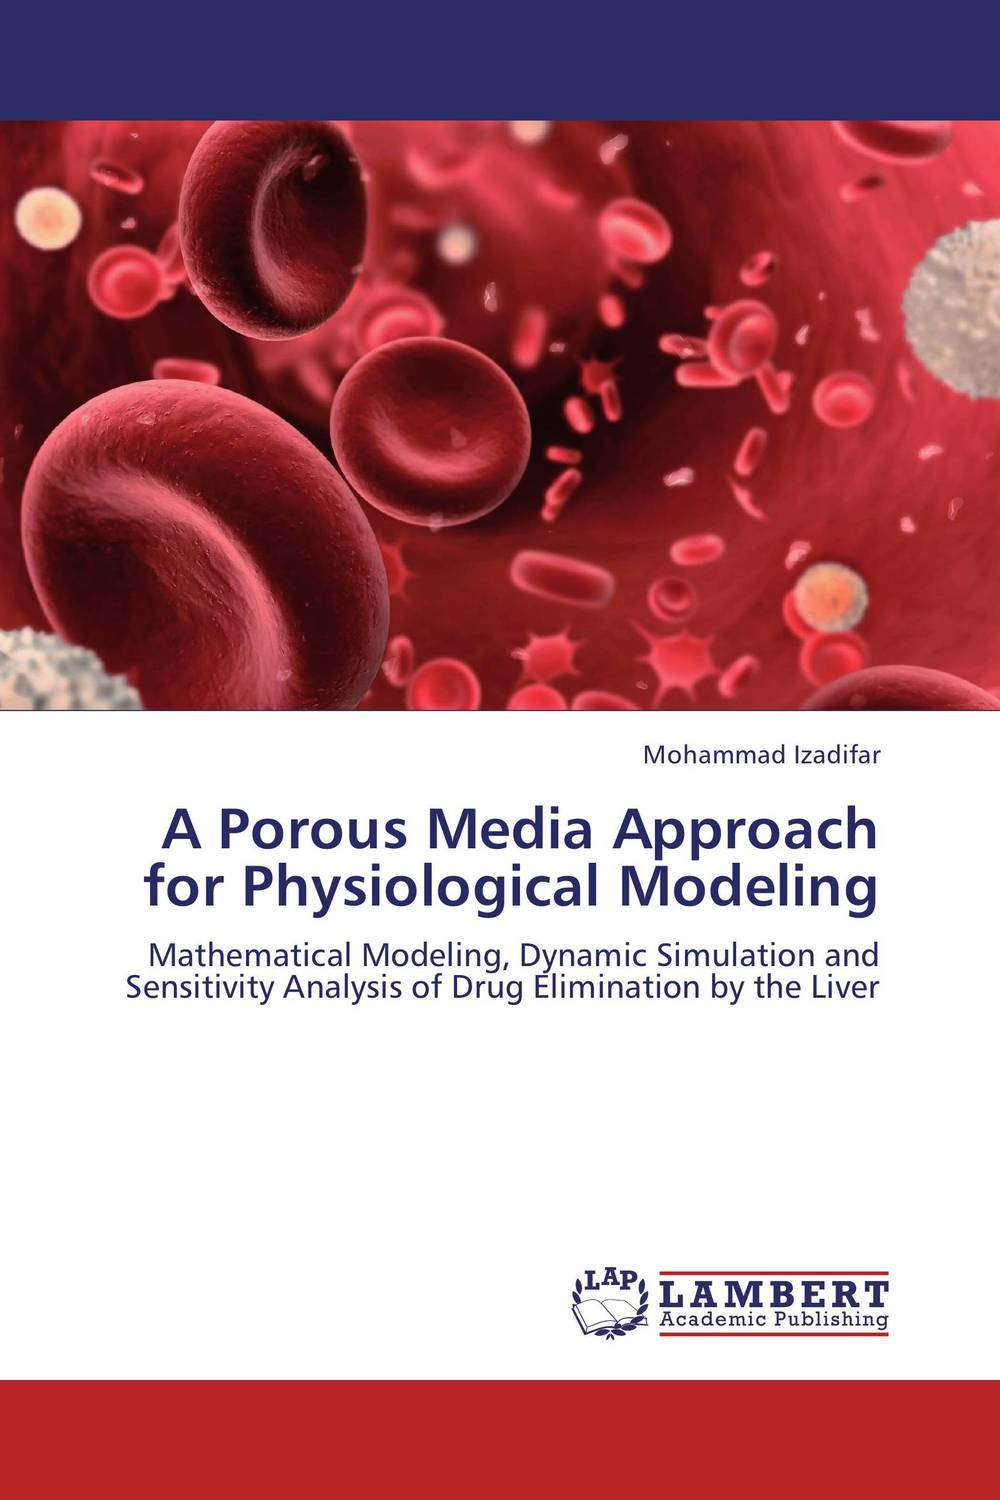 цена на A Porous Media Approach for Physiological Modeling